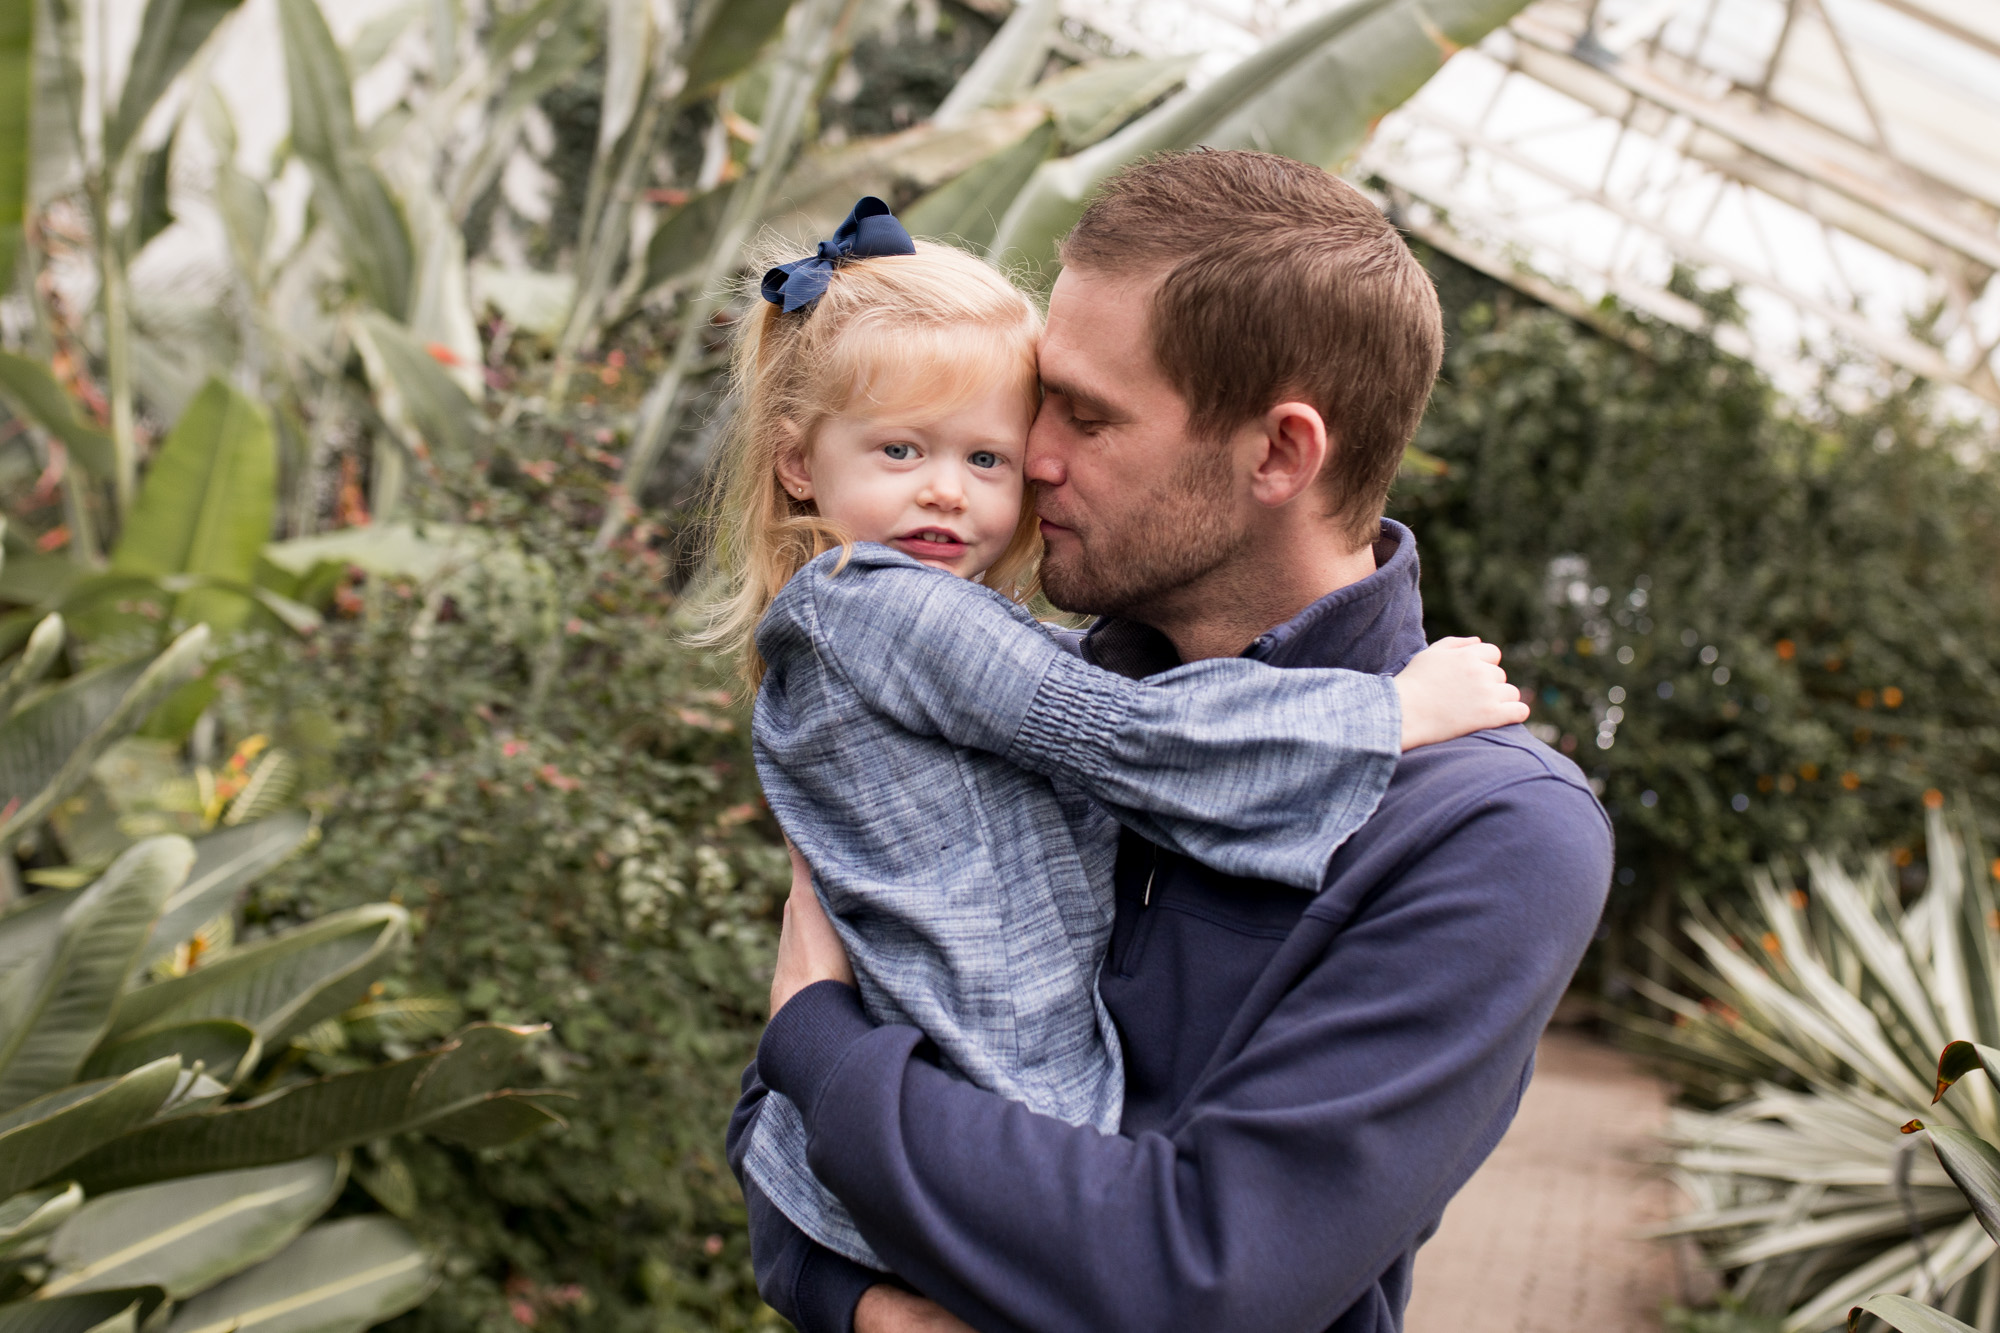 dad snuggles daughter's cheek during Foellinger-Freimann Botanical Conservatory family session in Fort Wayne Indiana